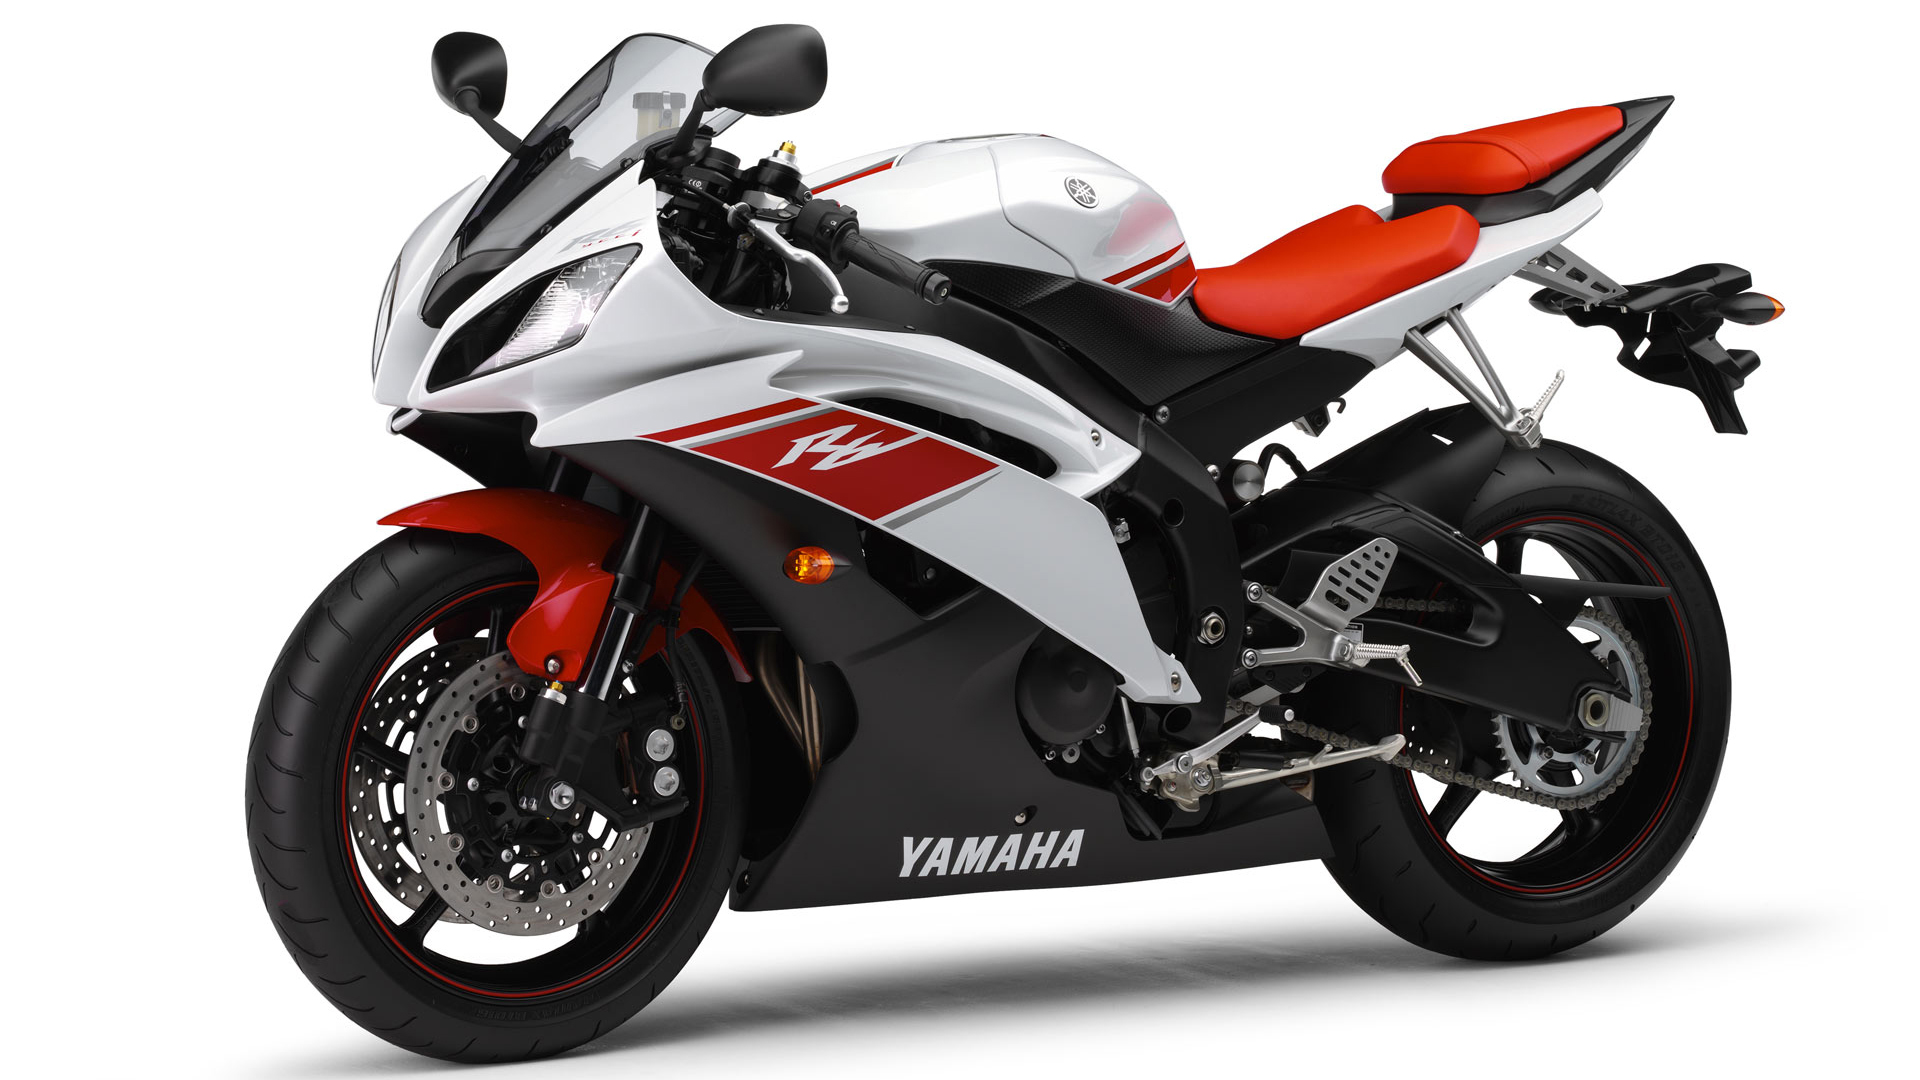 Yamaha R6 2009 Model 1448.92 Kb